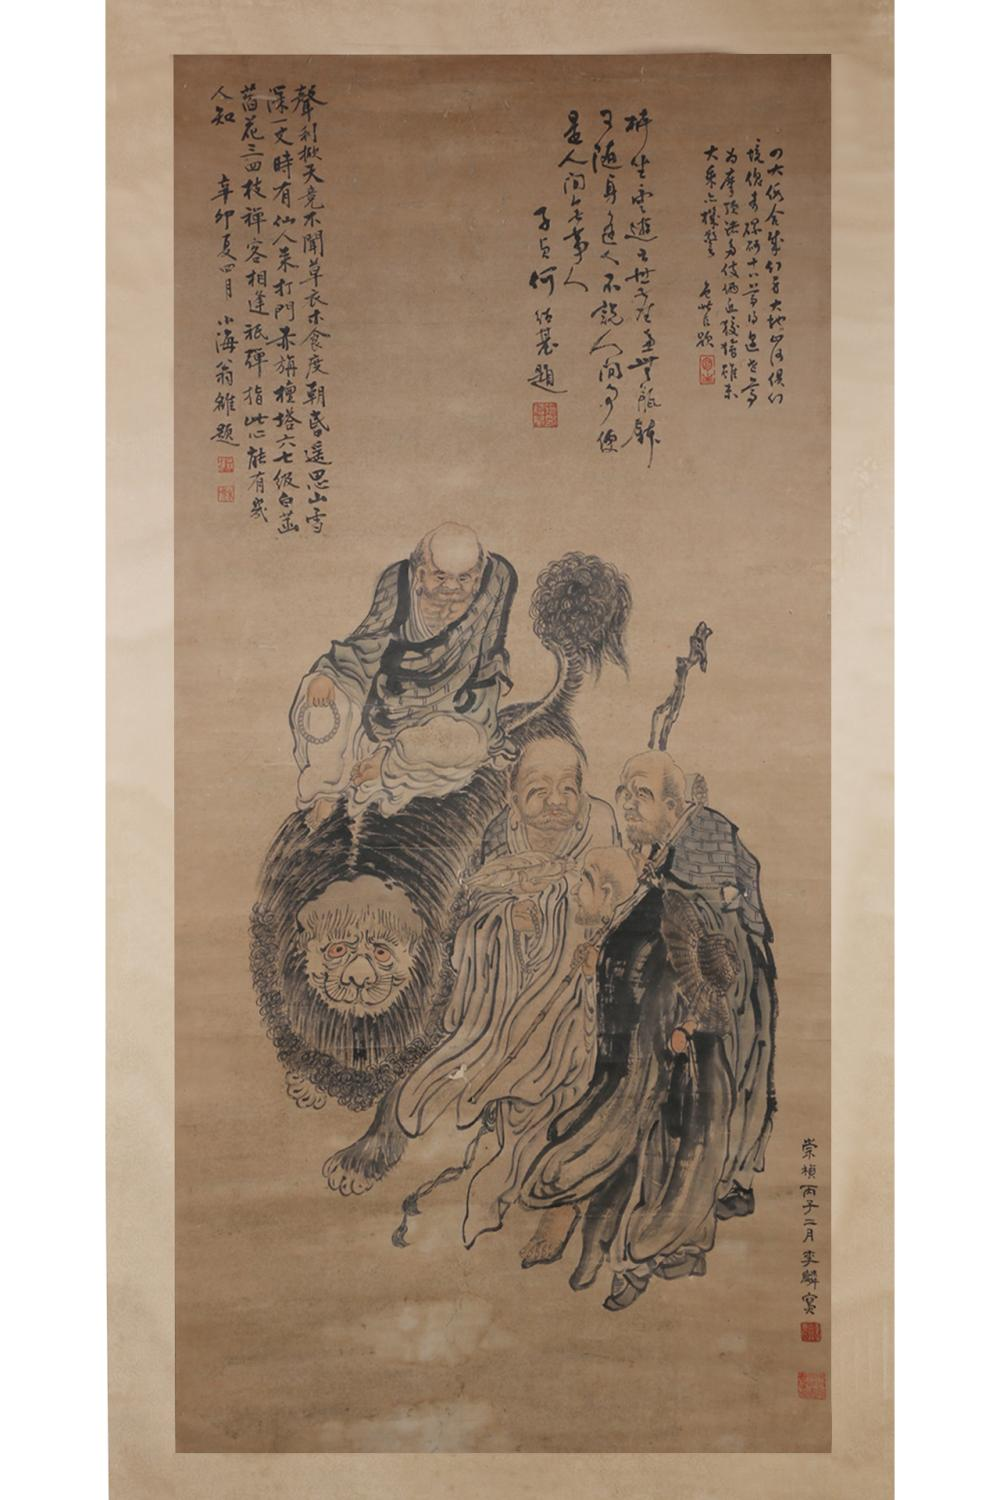 CHINESE INK AND COLOR PAINTING OF ARHAT FIGURES